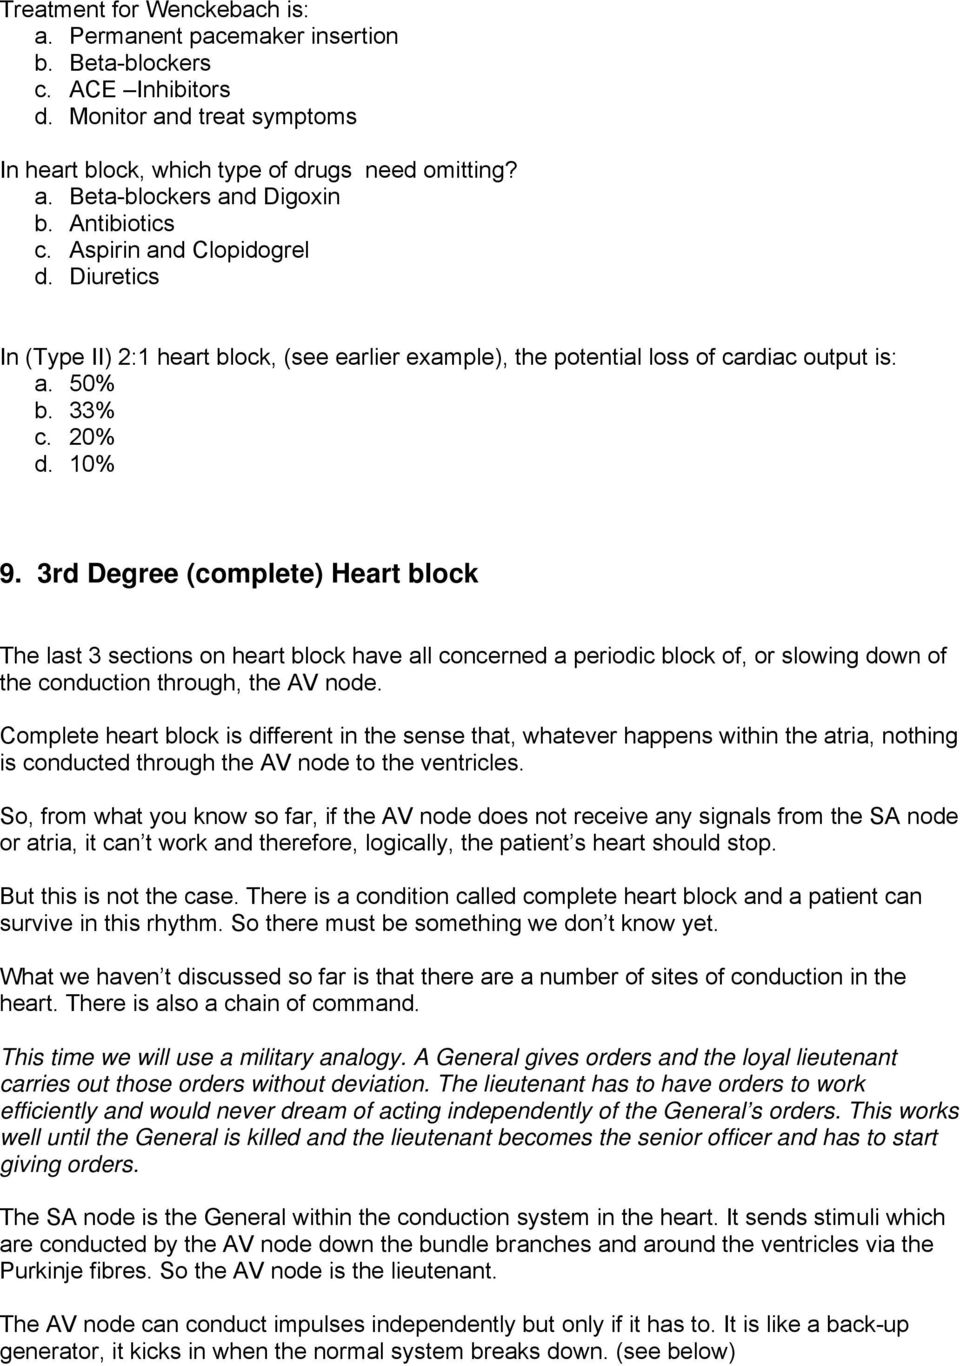 3rd Degree (complete) Heart block The last 3 sections on heart block have all concerned a periodic block of, or slowing down of the conduction through, the AV node.